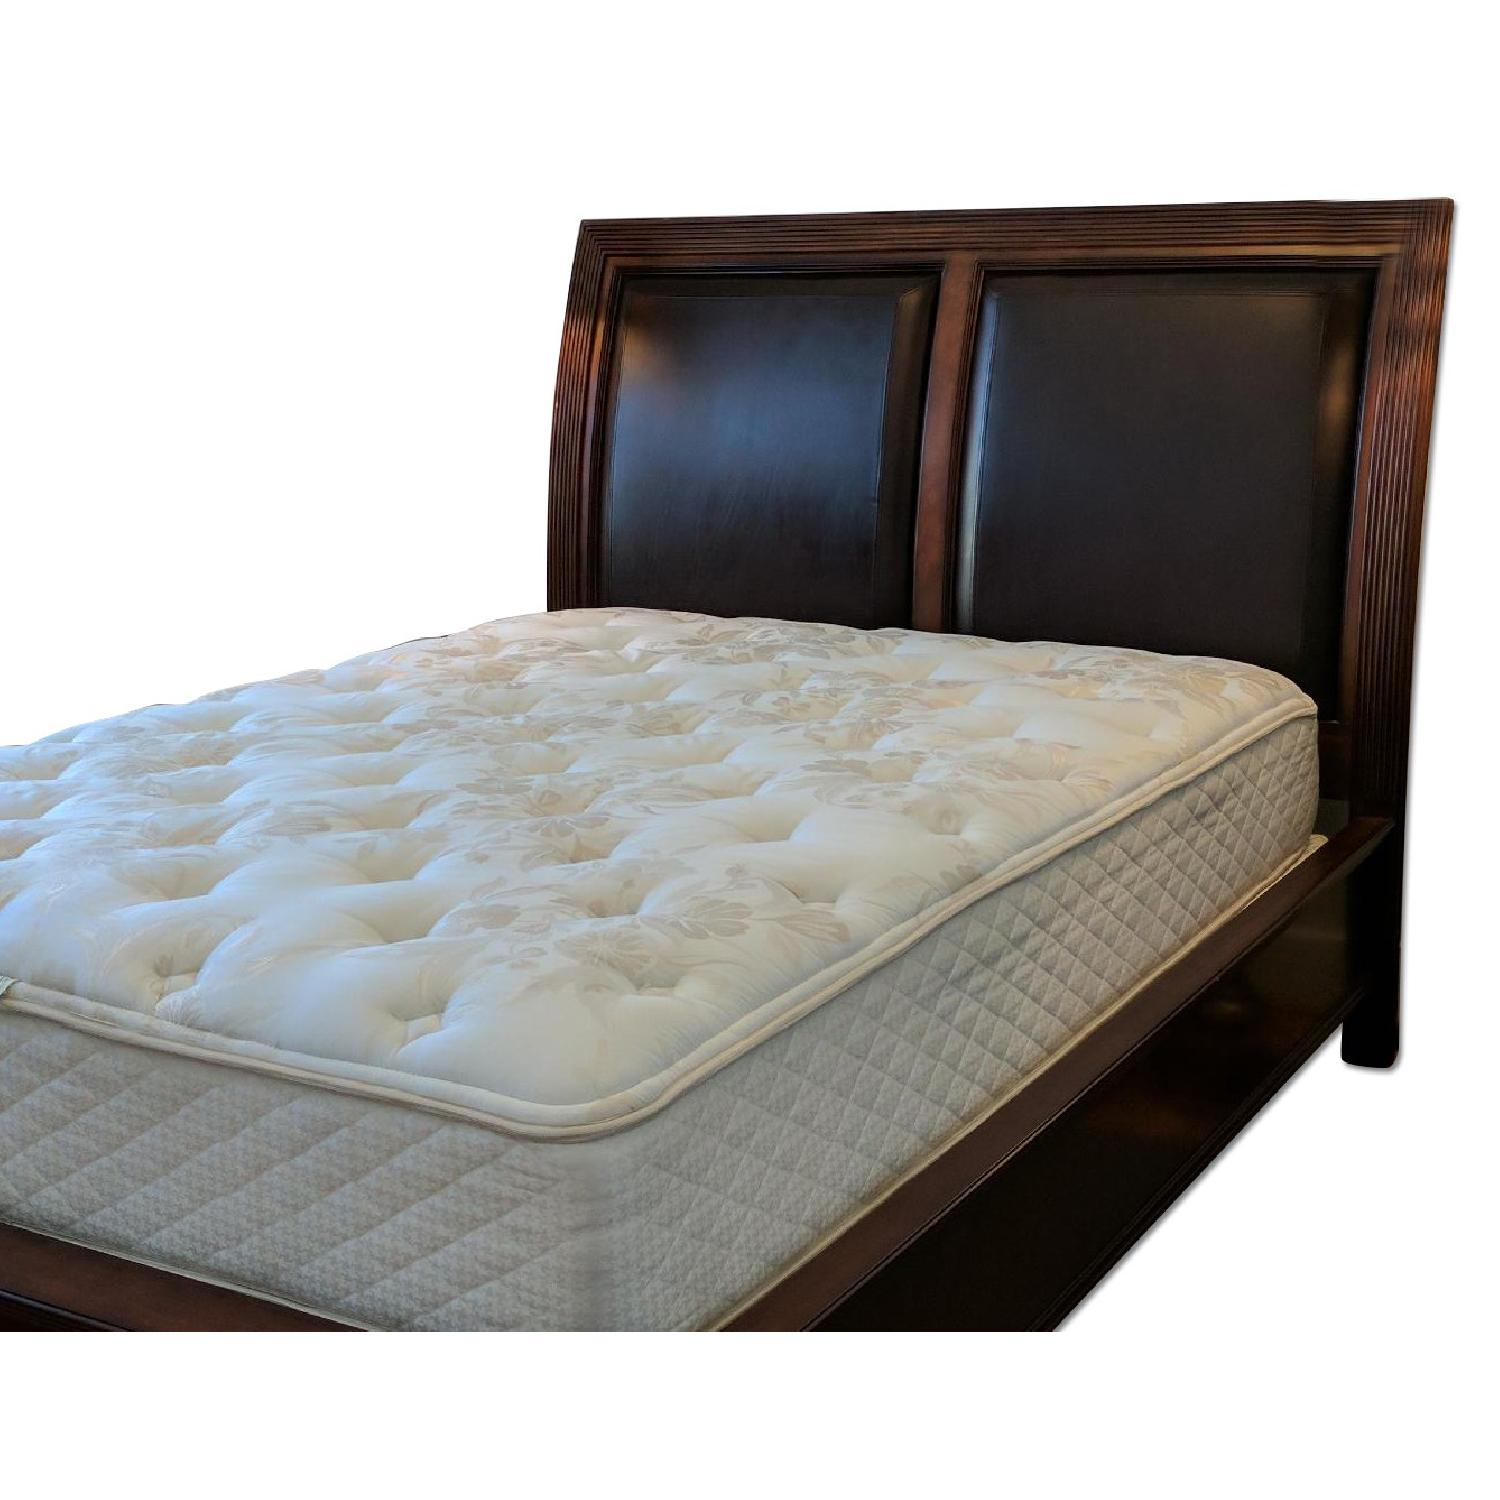 macy's queen bed frame w leather headboard  aptdeco - macy's queen bed frame w leather headboard